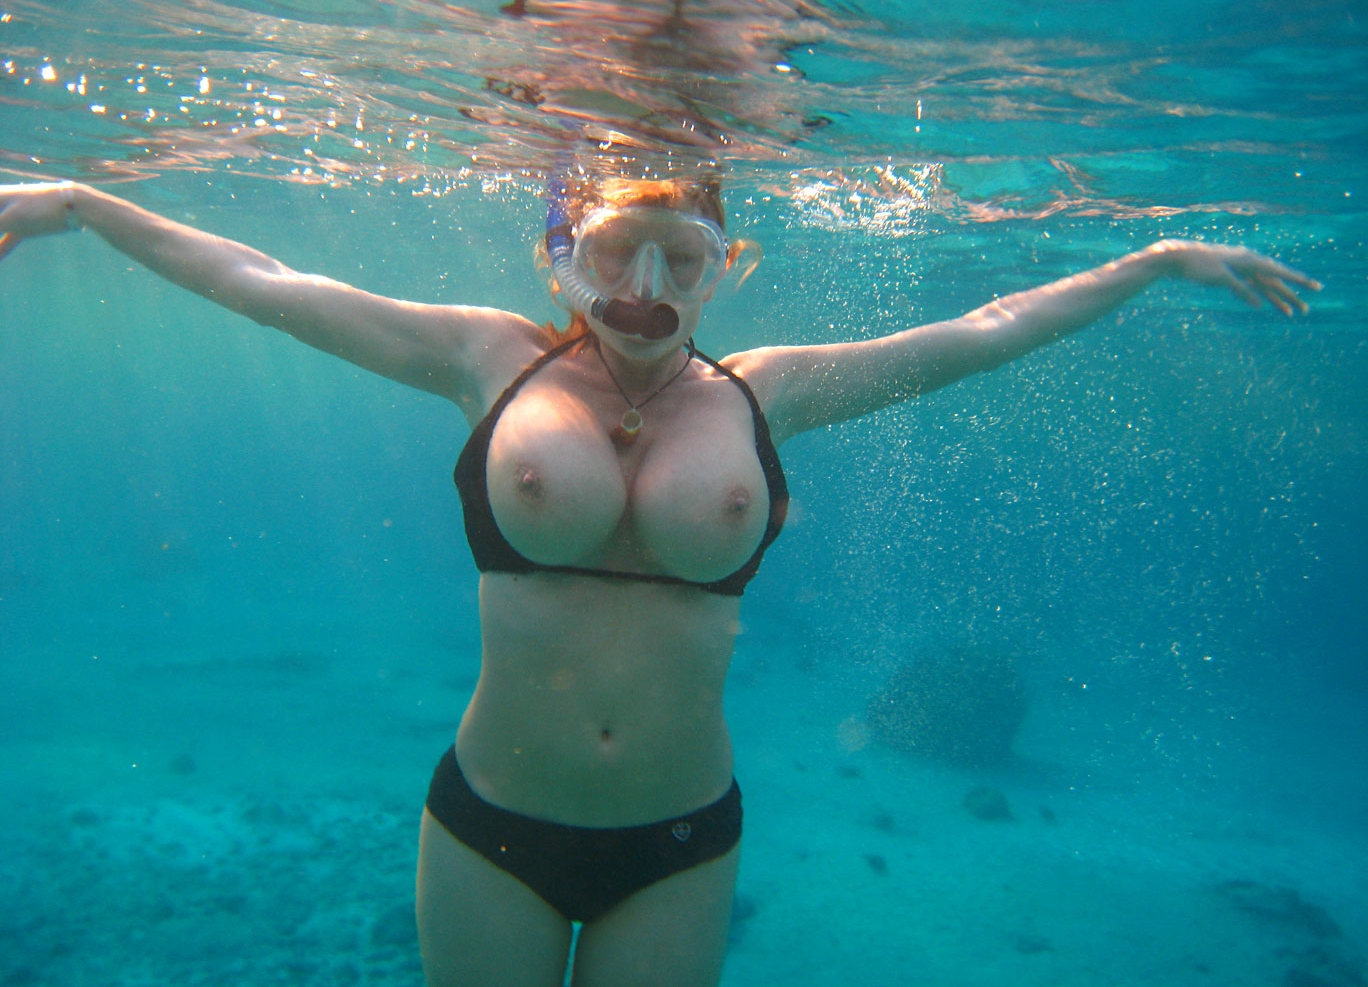 For Sexy swimmer girl naked and alone opinion you